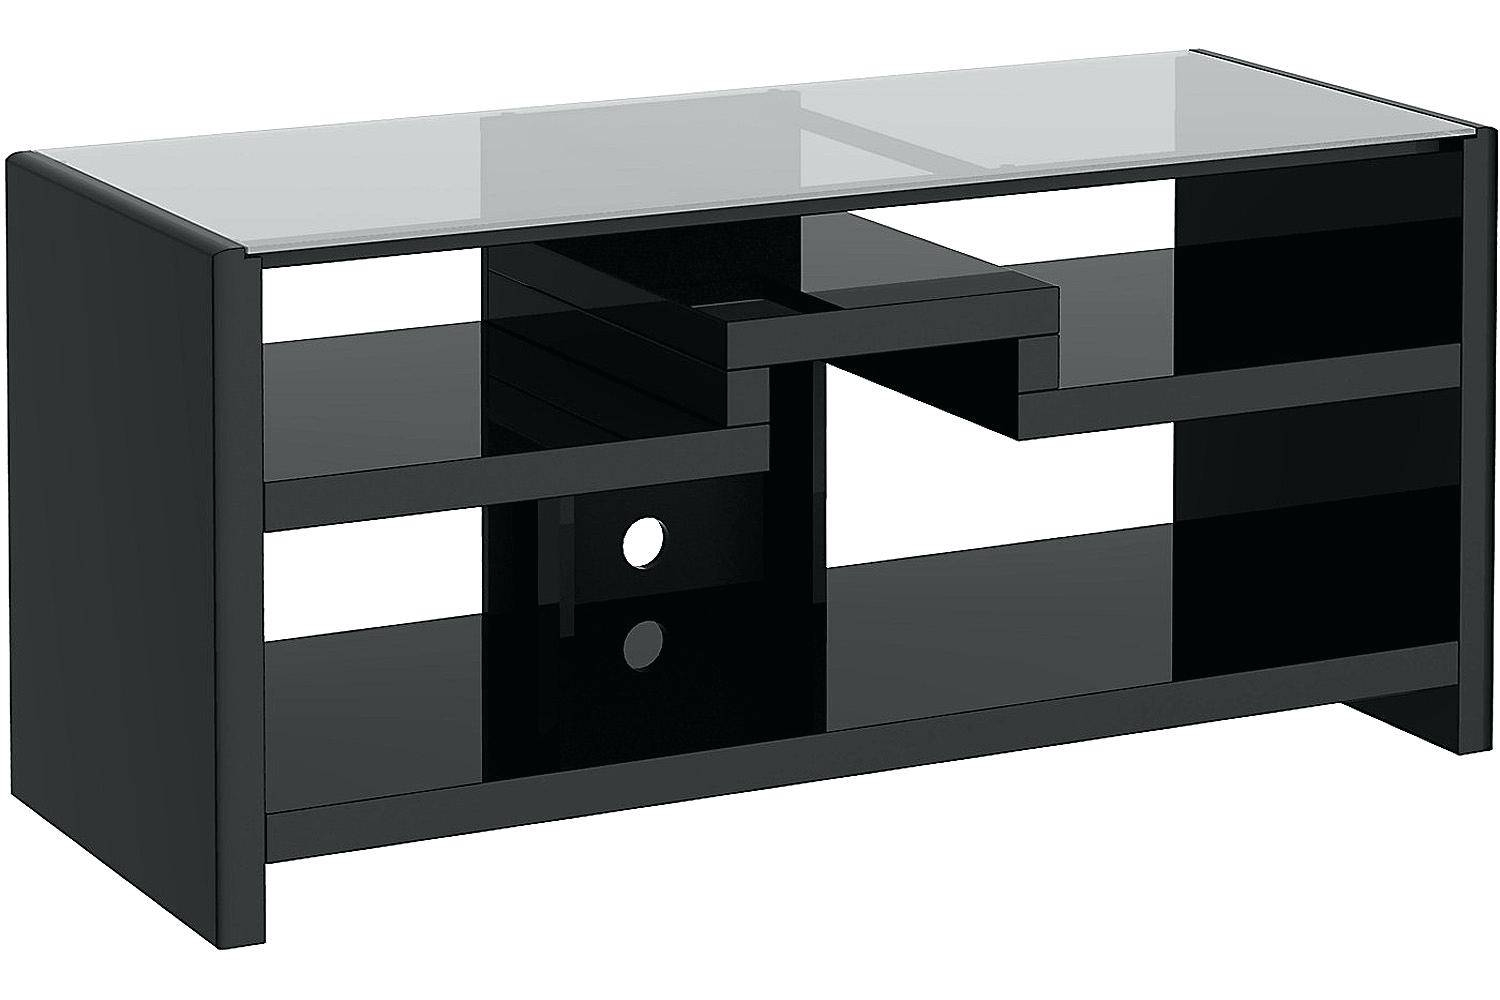 Tv Stand : Corner Tv Console 55 Inch Corner Tv Stand Flat Screen For Tv Stands 38 Inches Wide (View 8 of 15)